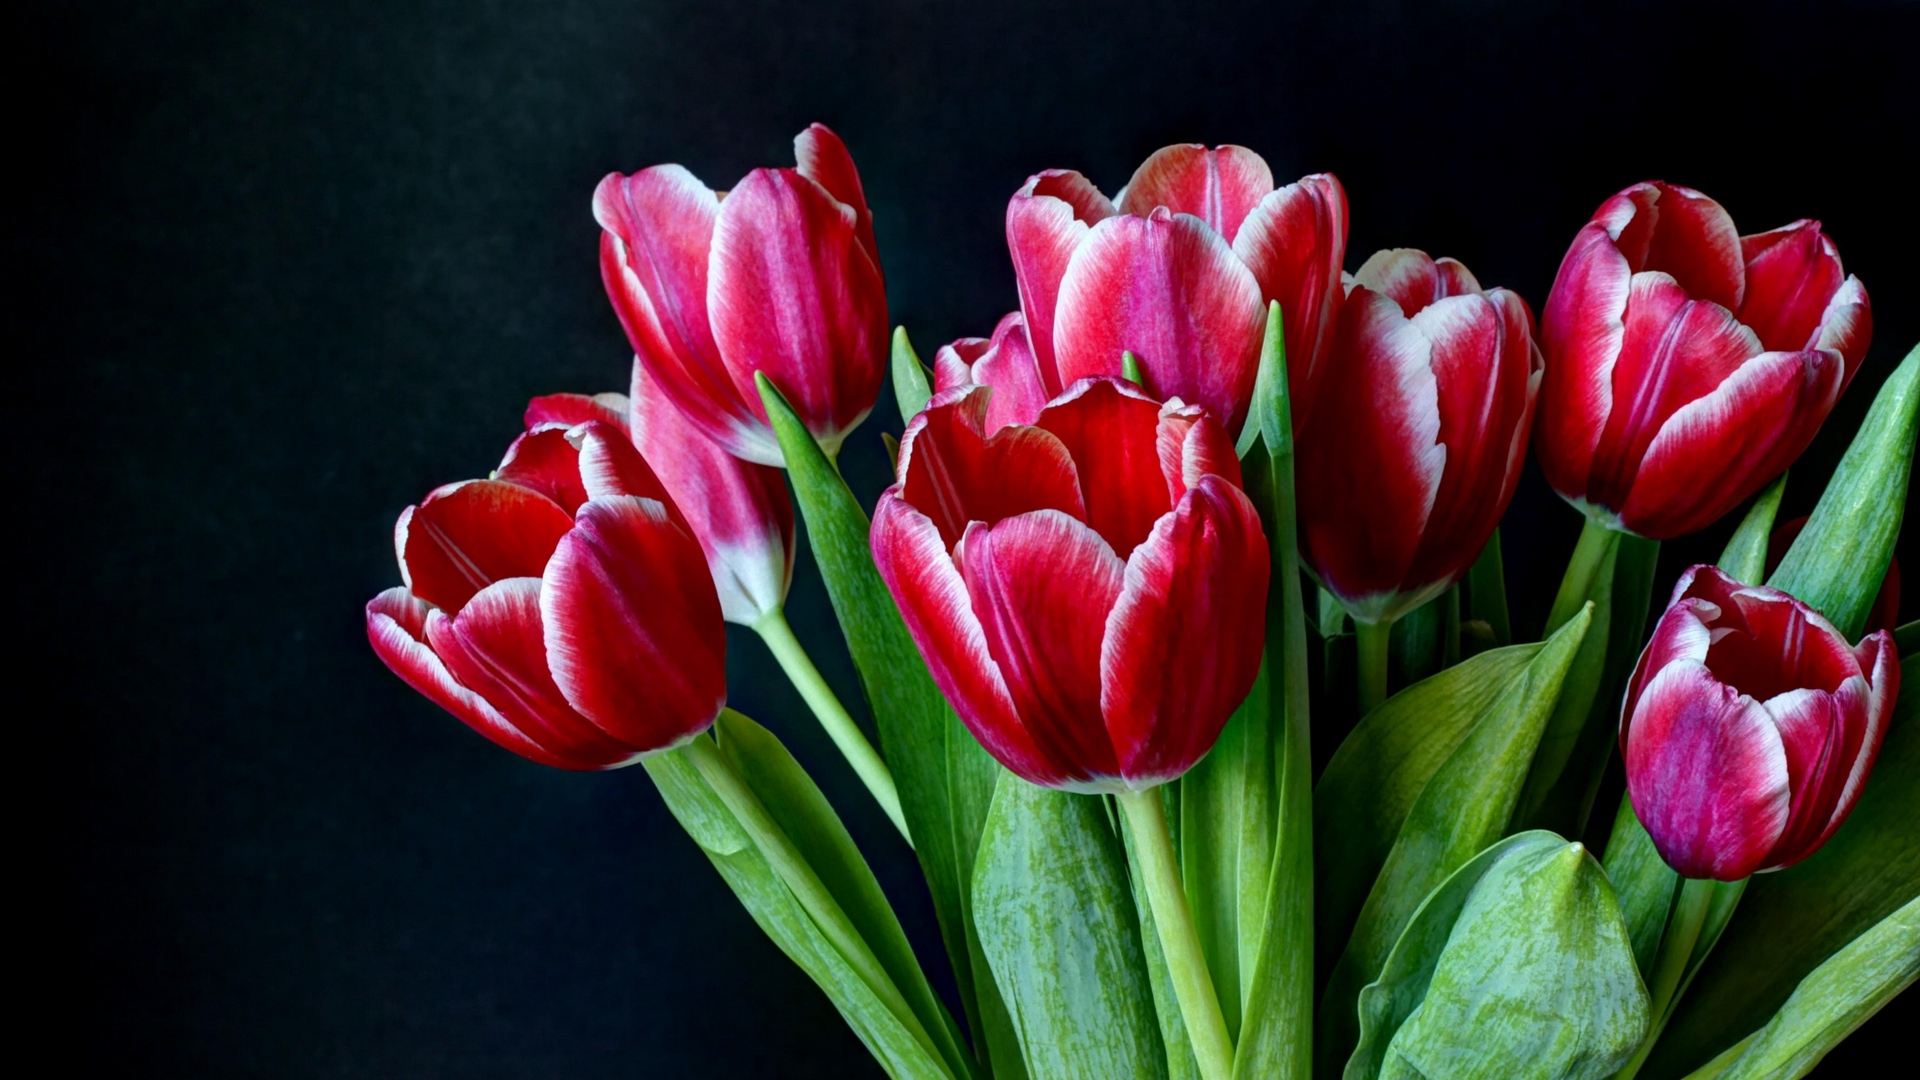 Dark Background And Tulips Hd Wallpaper - Tulip , HD Wallpaper & Backgrounds